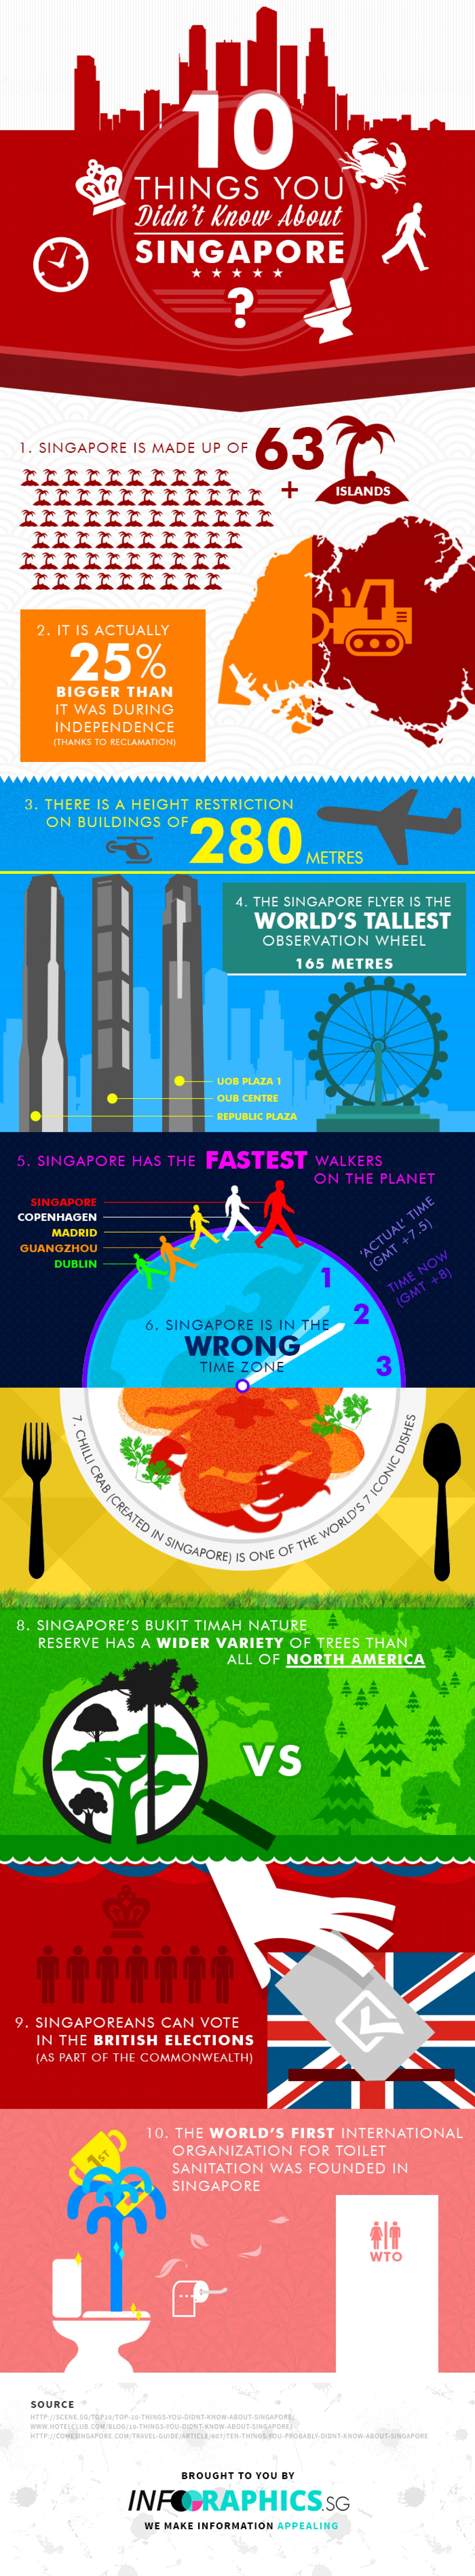 6. Ten things you did not know about Singapore